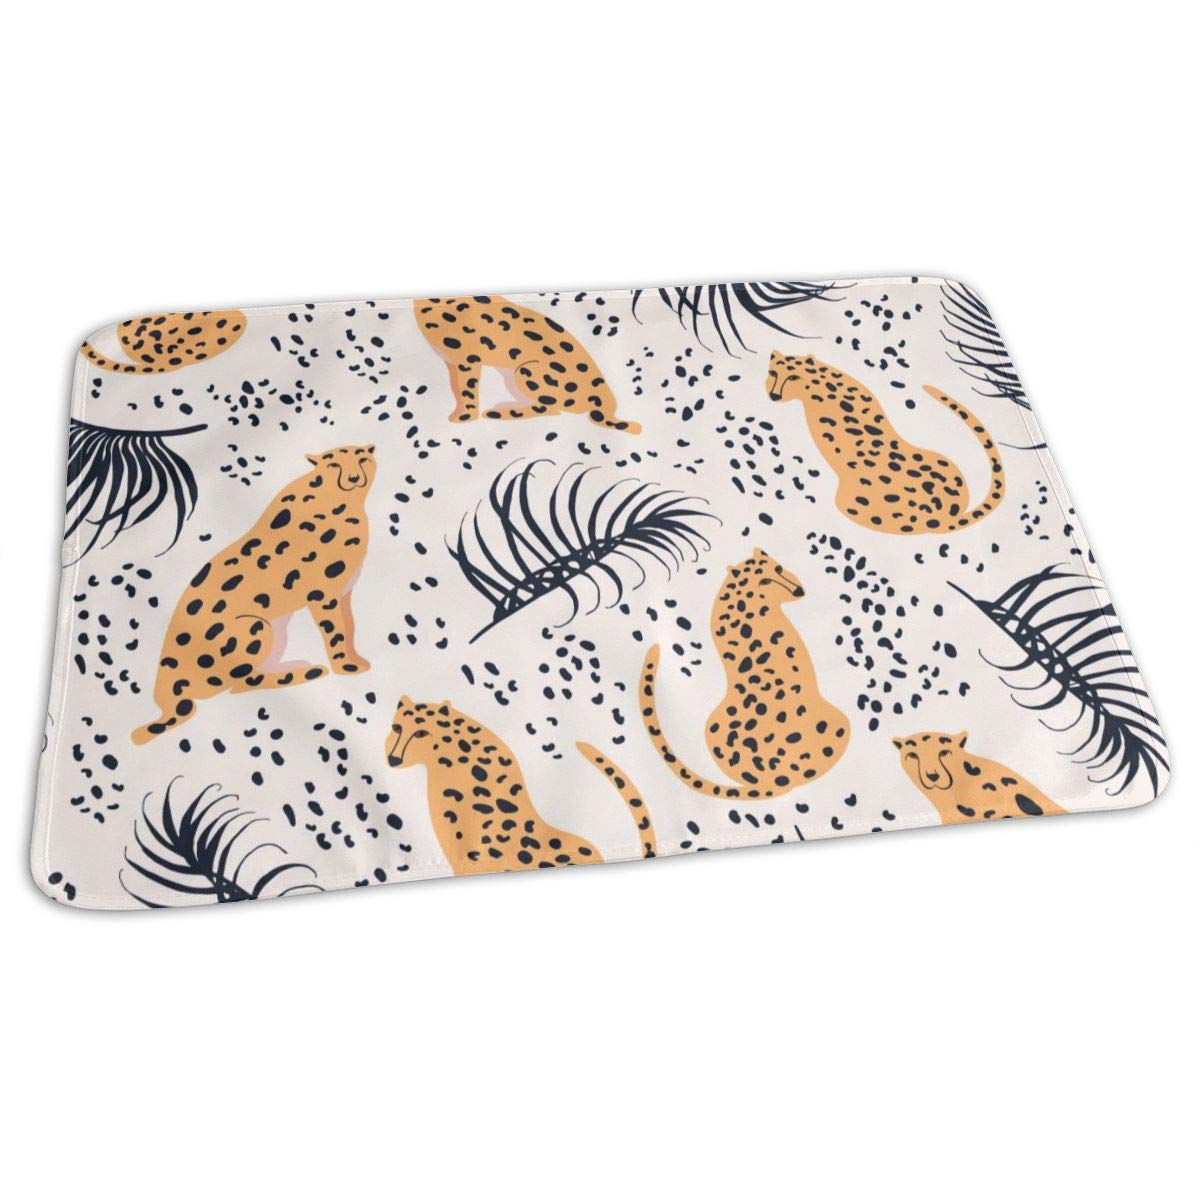 Osvbs Lovely Baby Reusable Waterproof Portable Cheetah with Palm Leaves Changing Pad Home Travel 27.5''x19.7'' by Osvbs